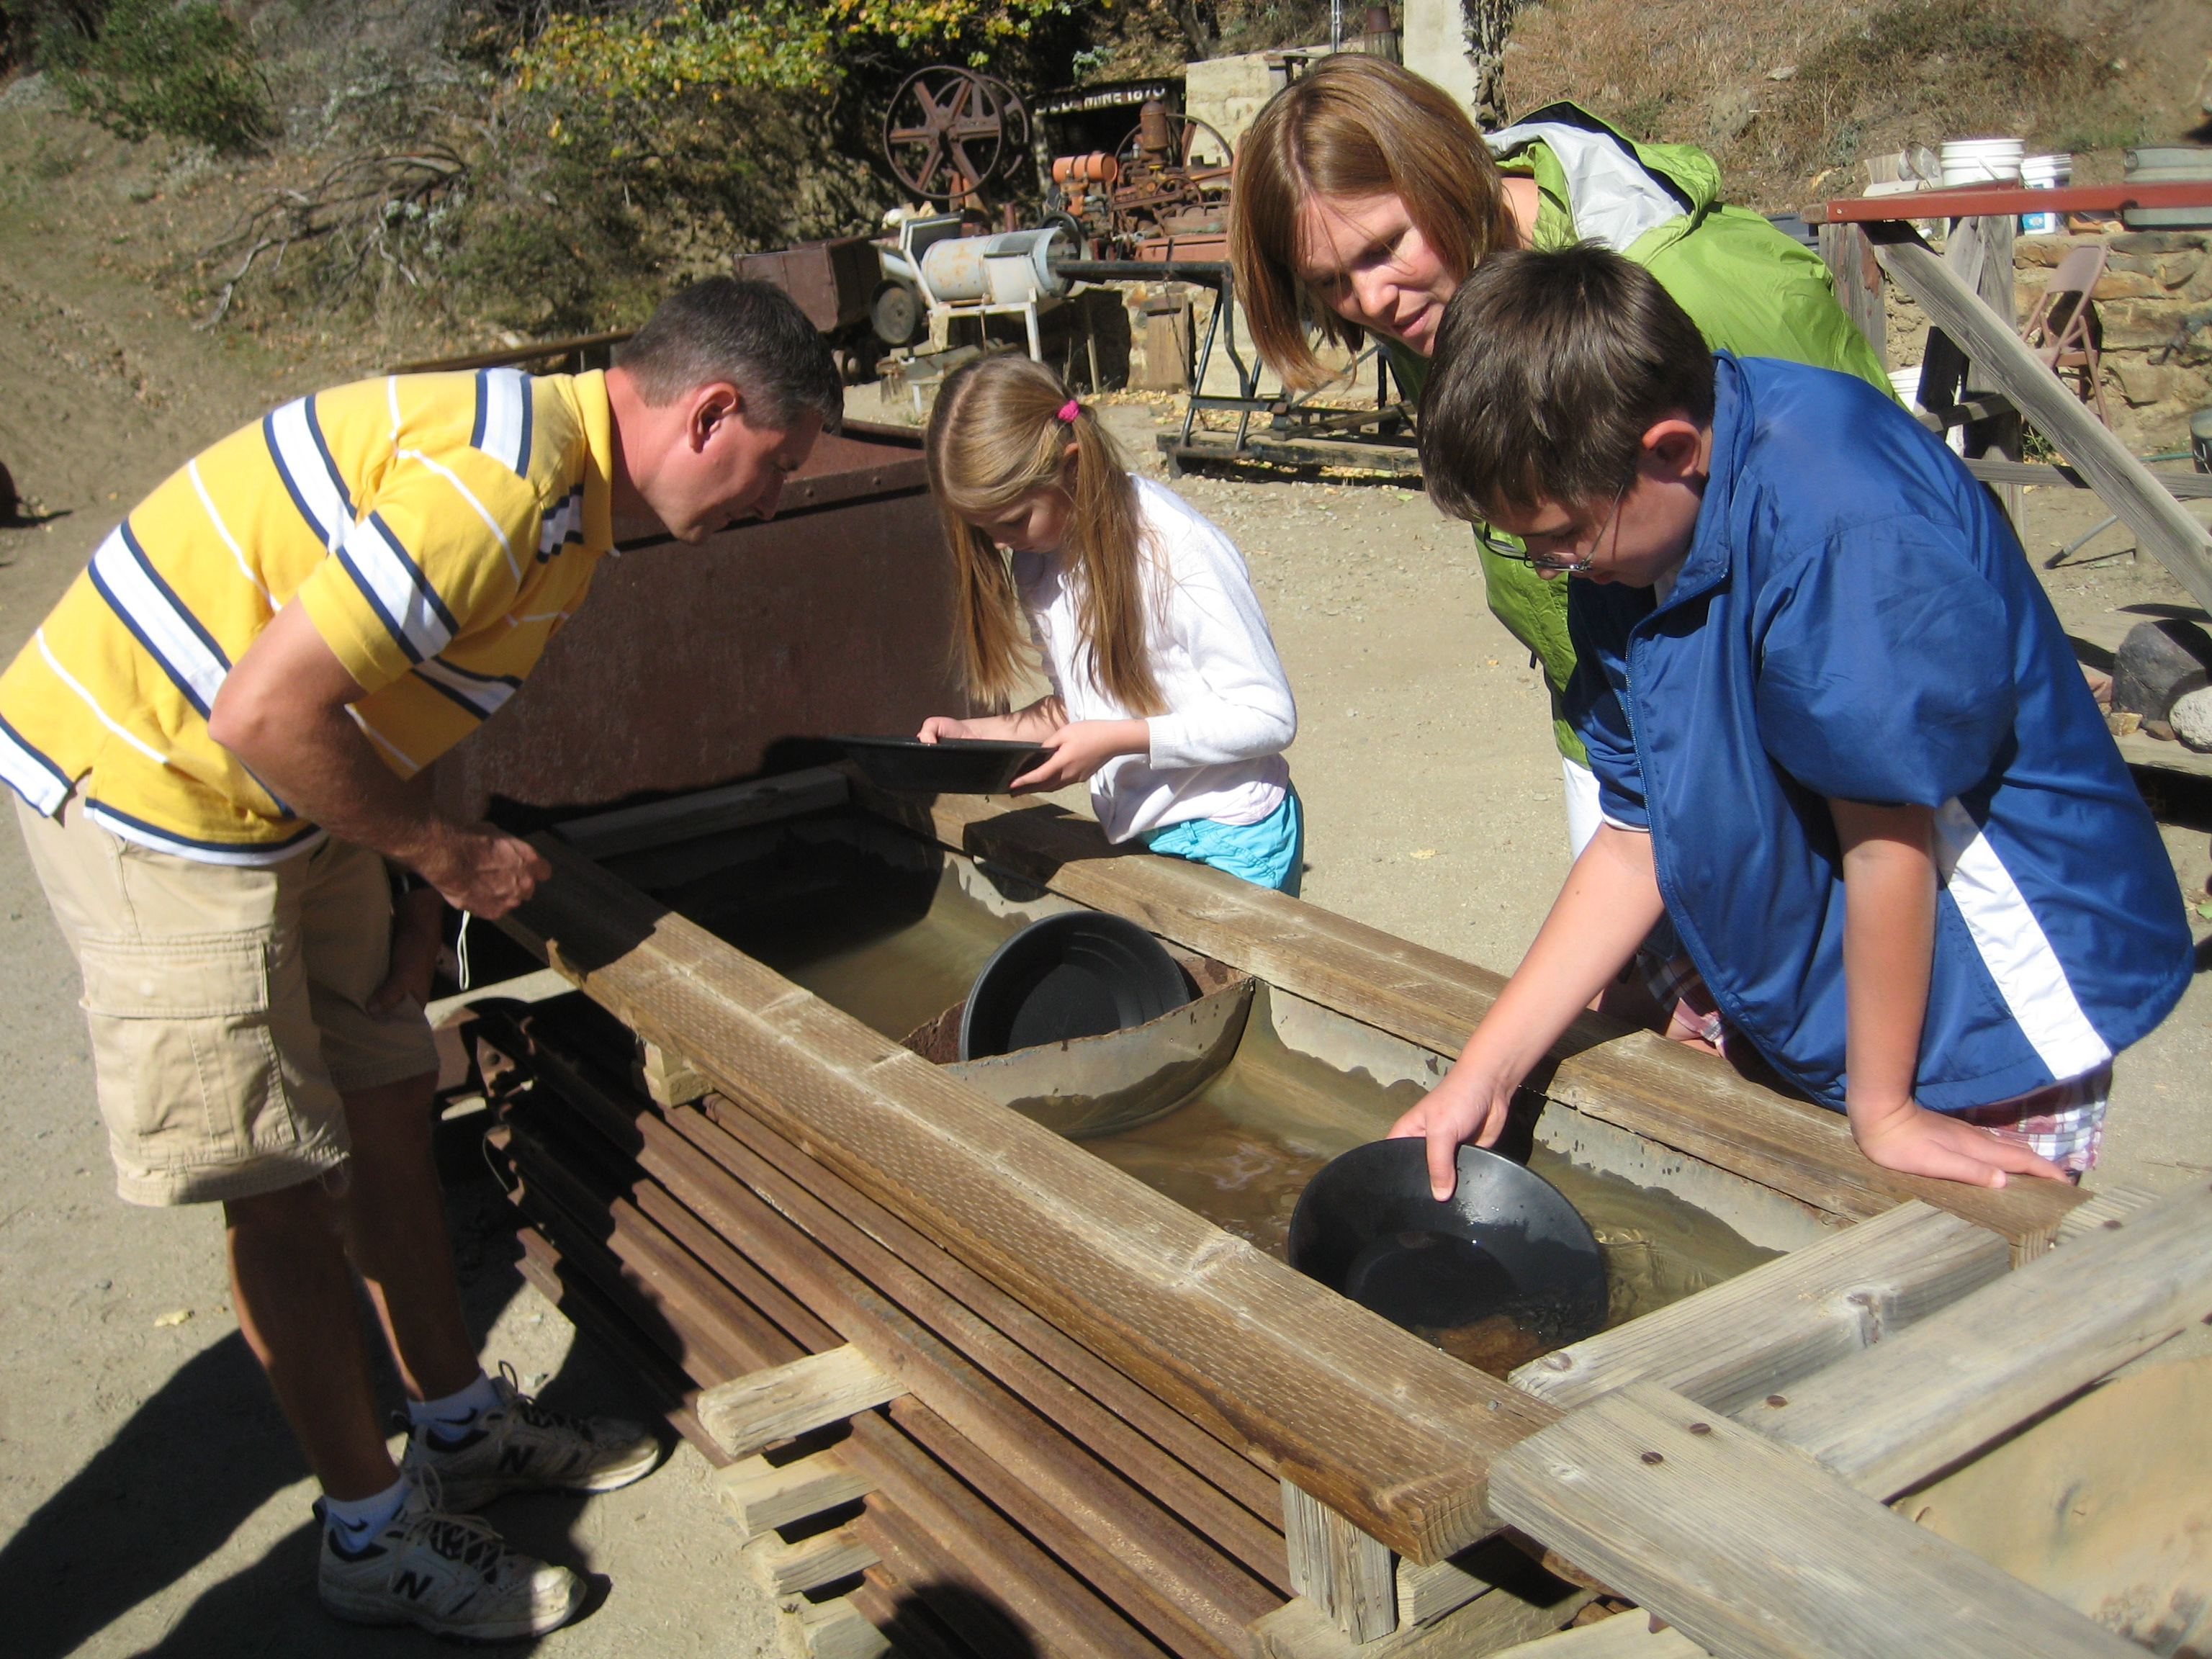 Family Panning for Gold - Julian Mining Company - Top Things to Do